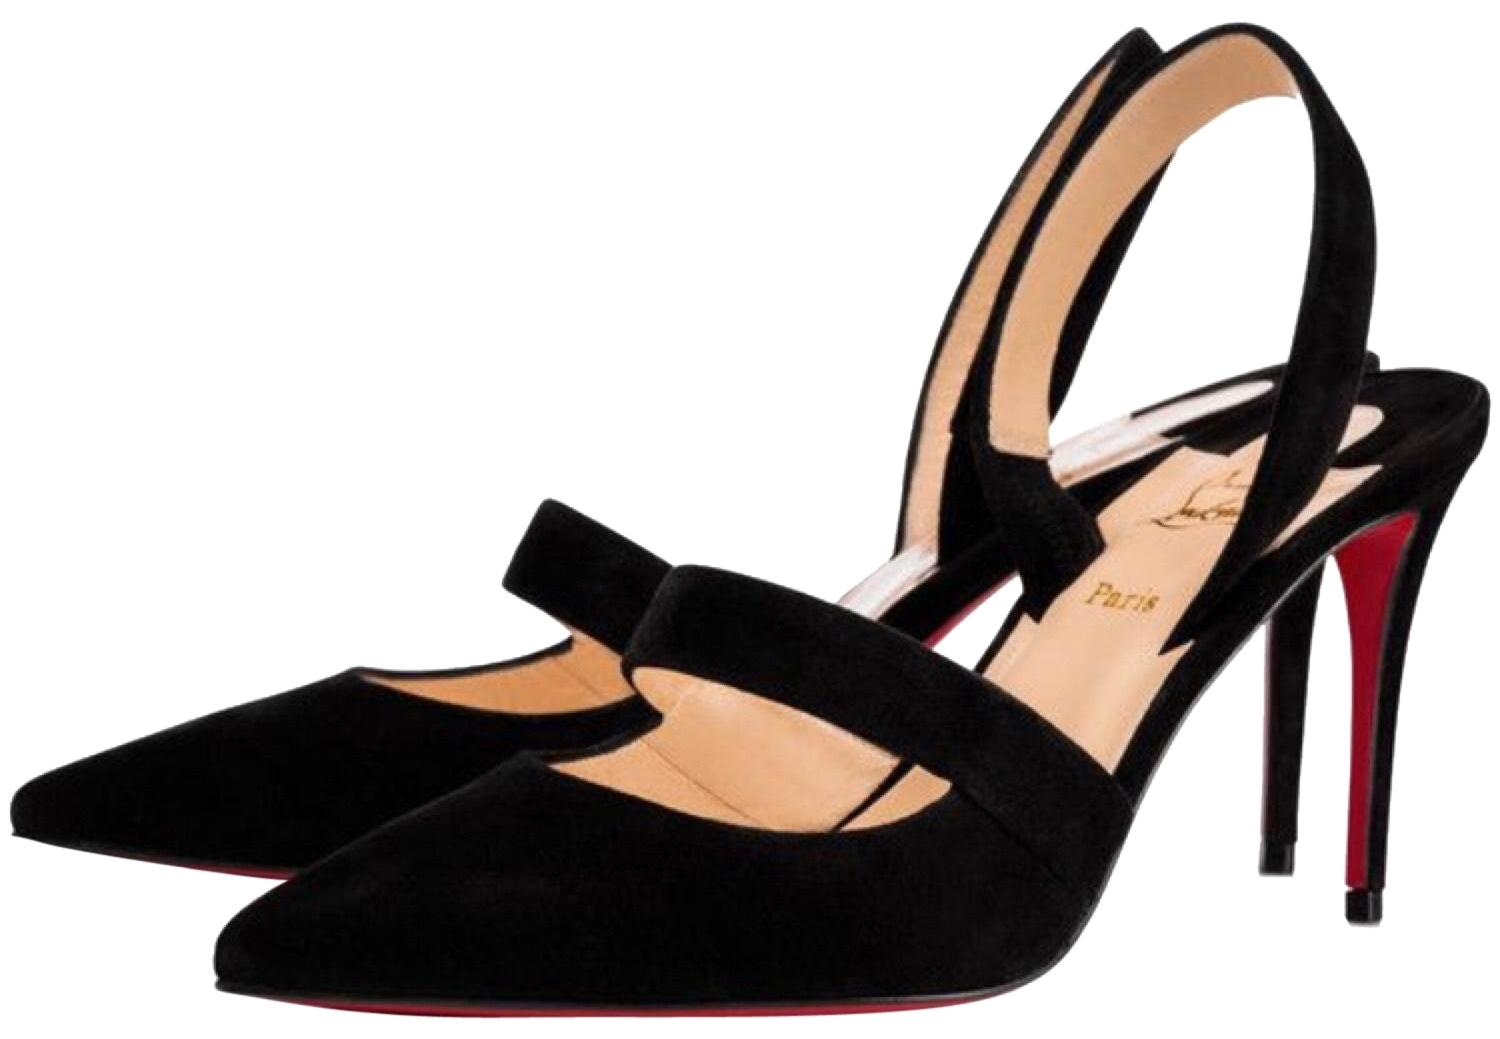 Christian Louboutin Black Actina 85mm Suede Sling Pumps Size EU 39.5 (Approx. US 9.5) Regular (M, B)